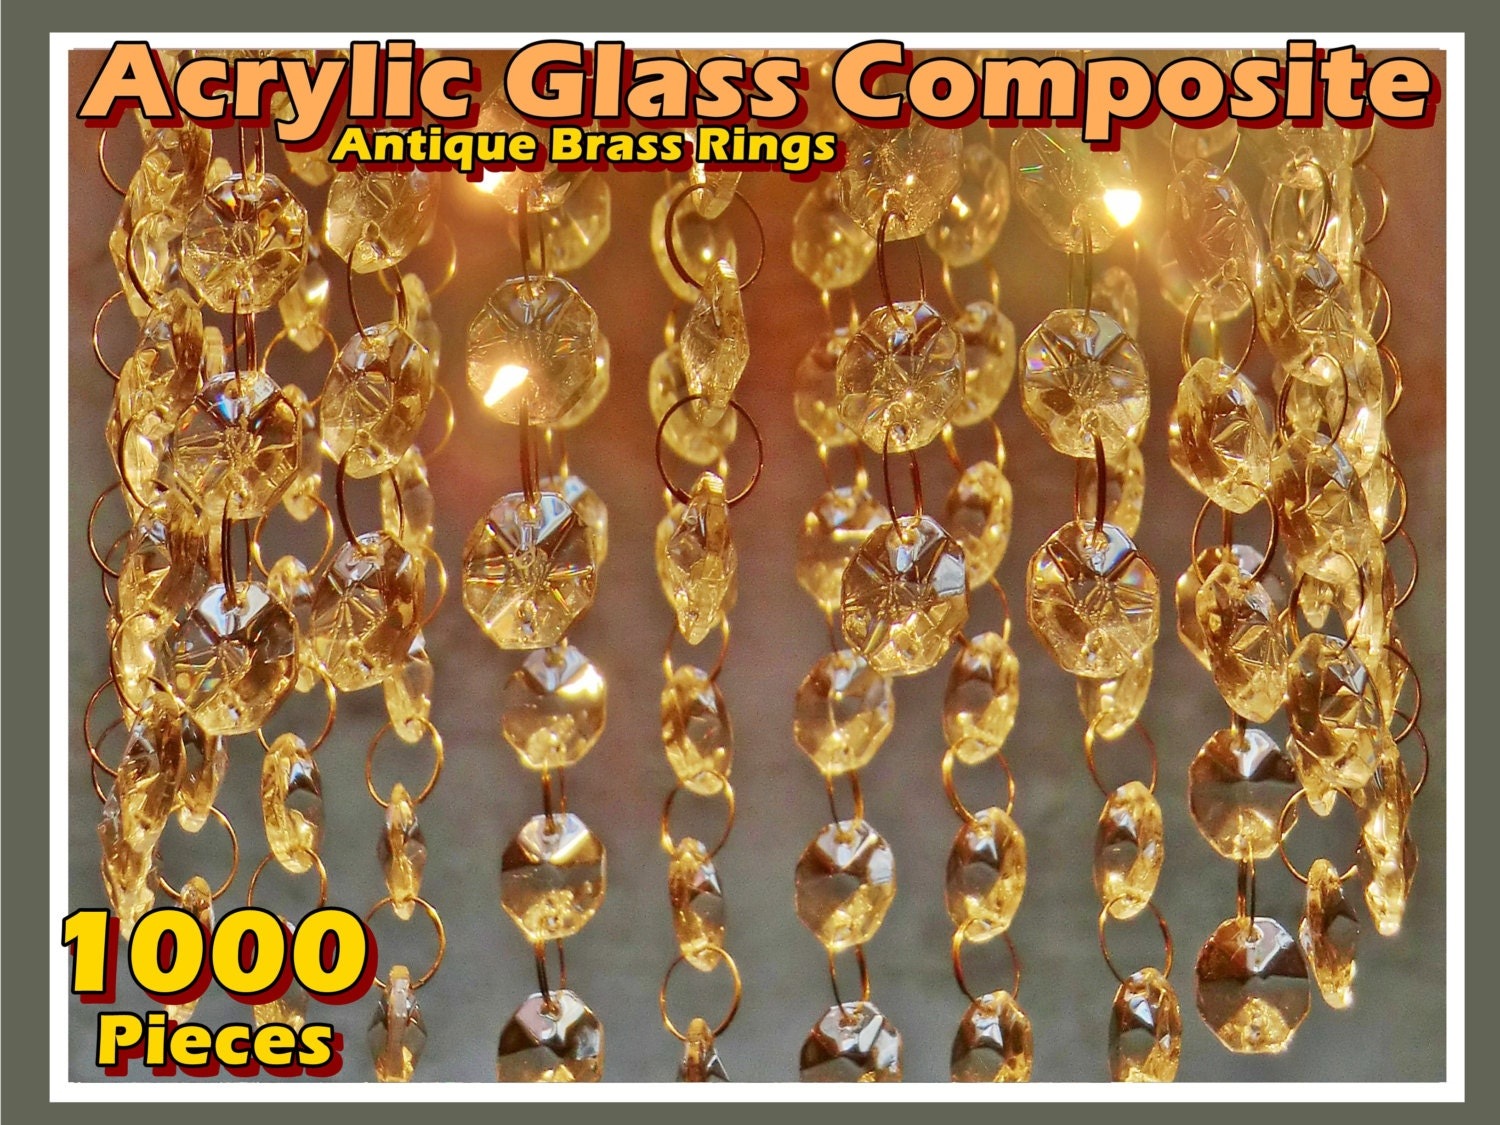 1000 chandelier drops light parts acrylic glass mix antique rings 1000 chandelier drops light parts acrylic glass mix antique rings crystals droplets christmas tree wedding deco beads 20 yard crafts garland mozeypictures